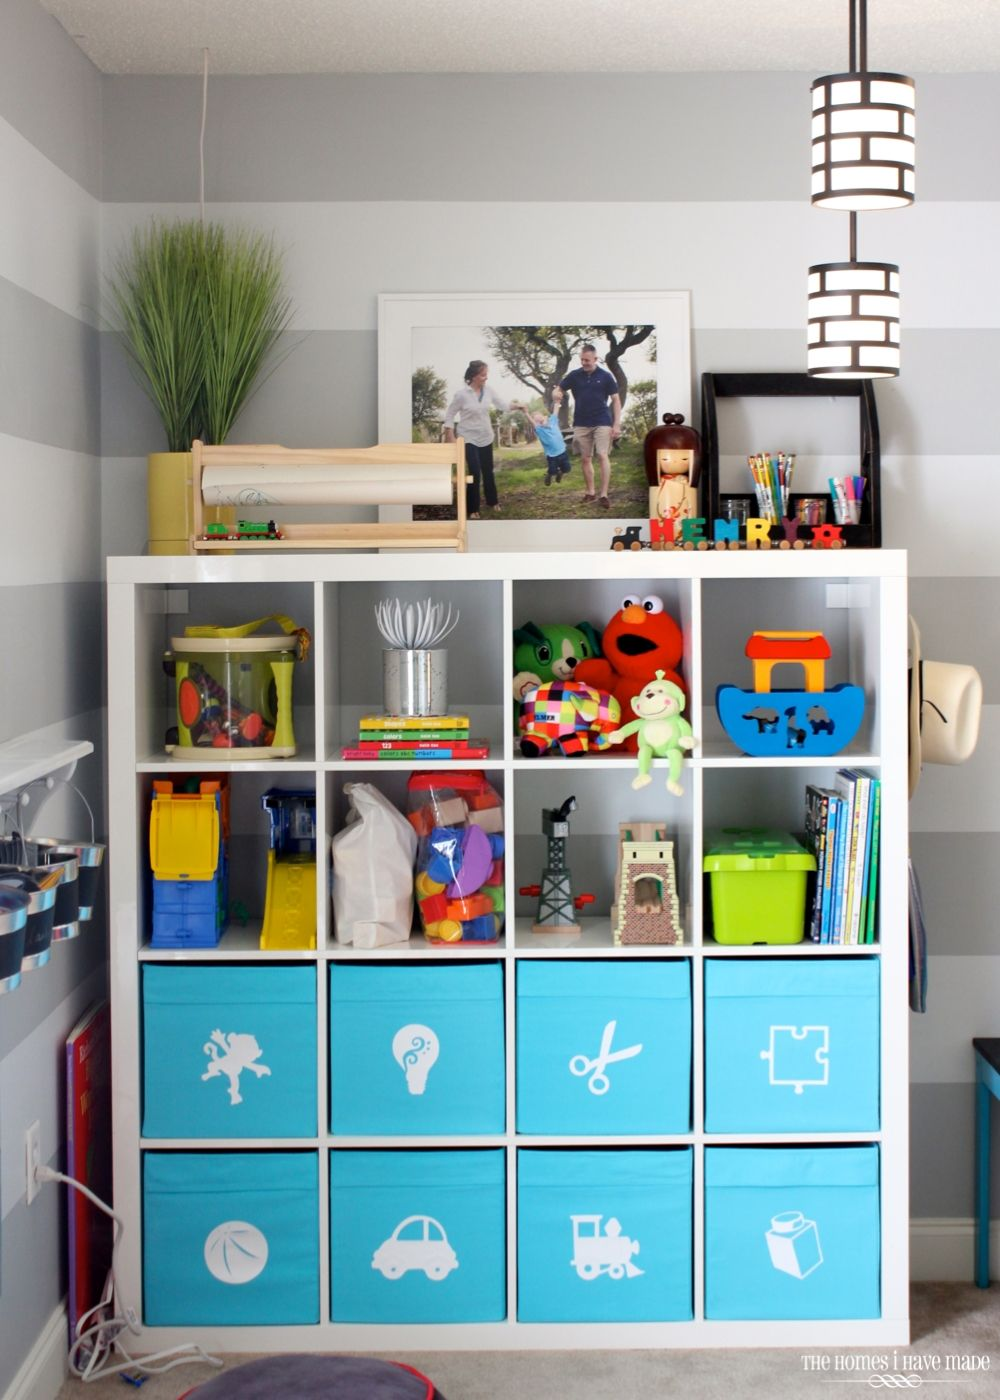 Design Playroom Storage toy storage in an ikea expedit playrooms and the playroom with pictures so they know where to put toys before they